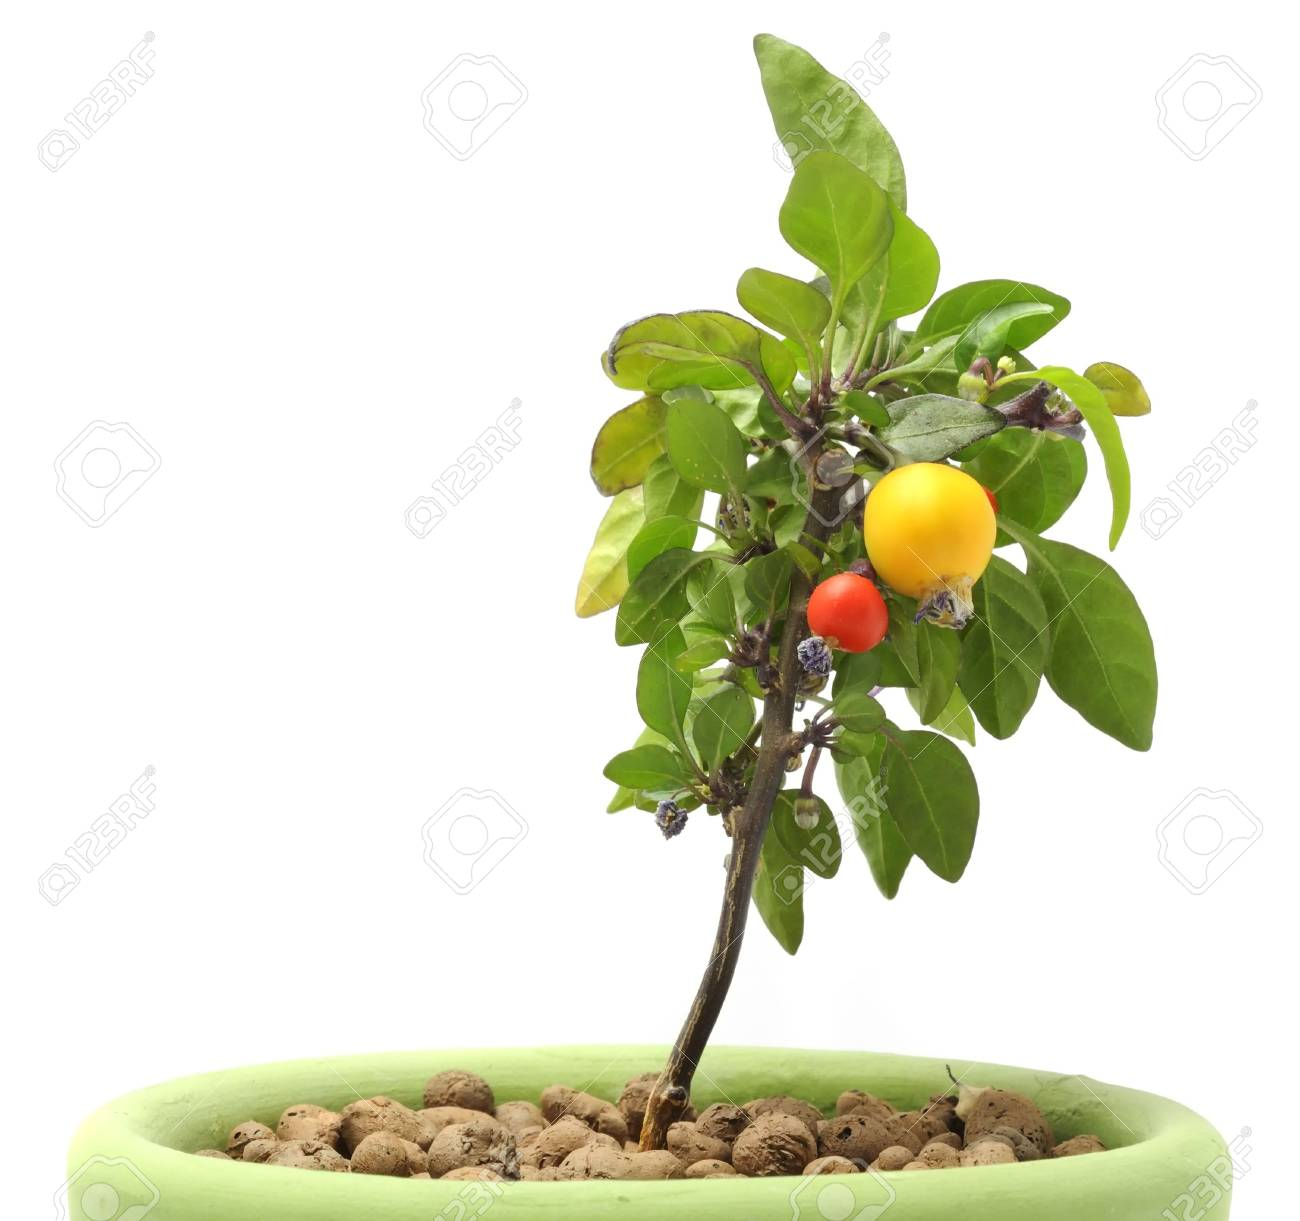 Decorative Pepper in Pot Stock Photo - 7887100